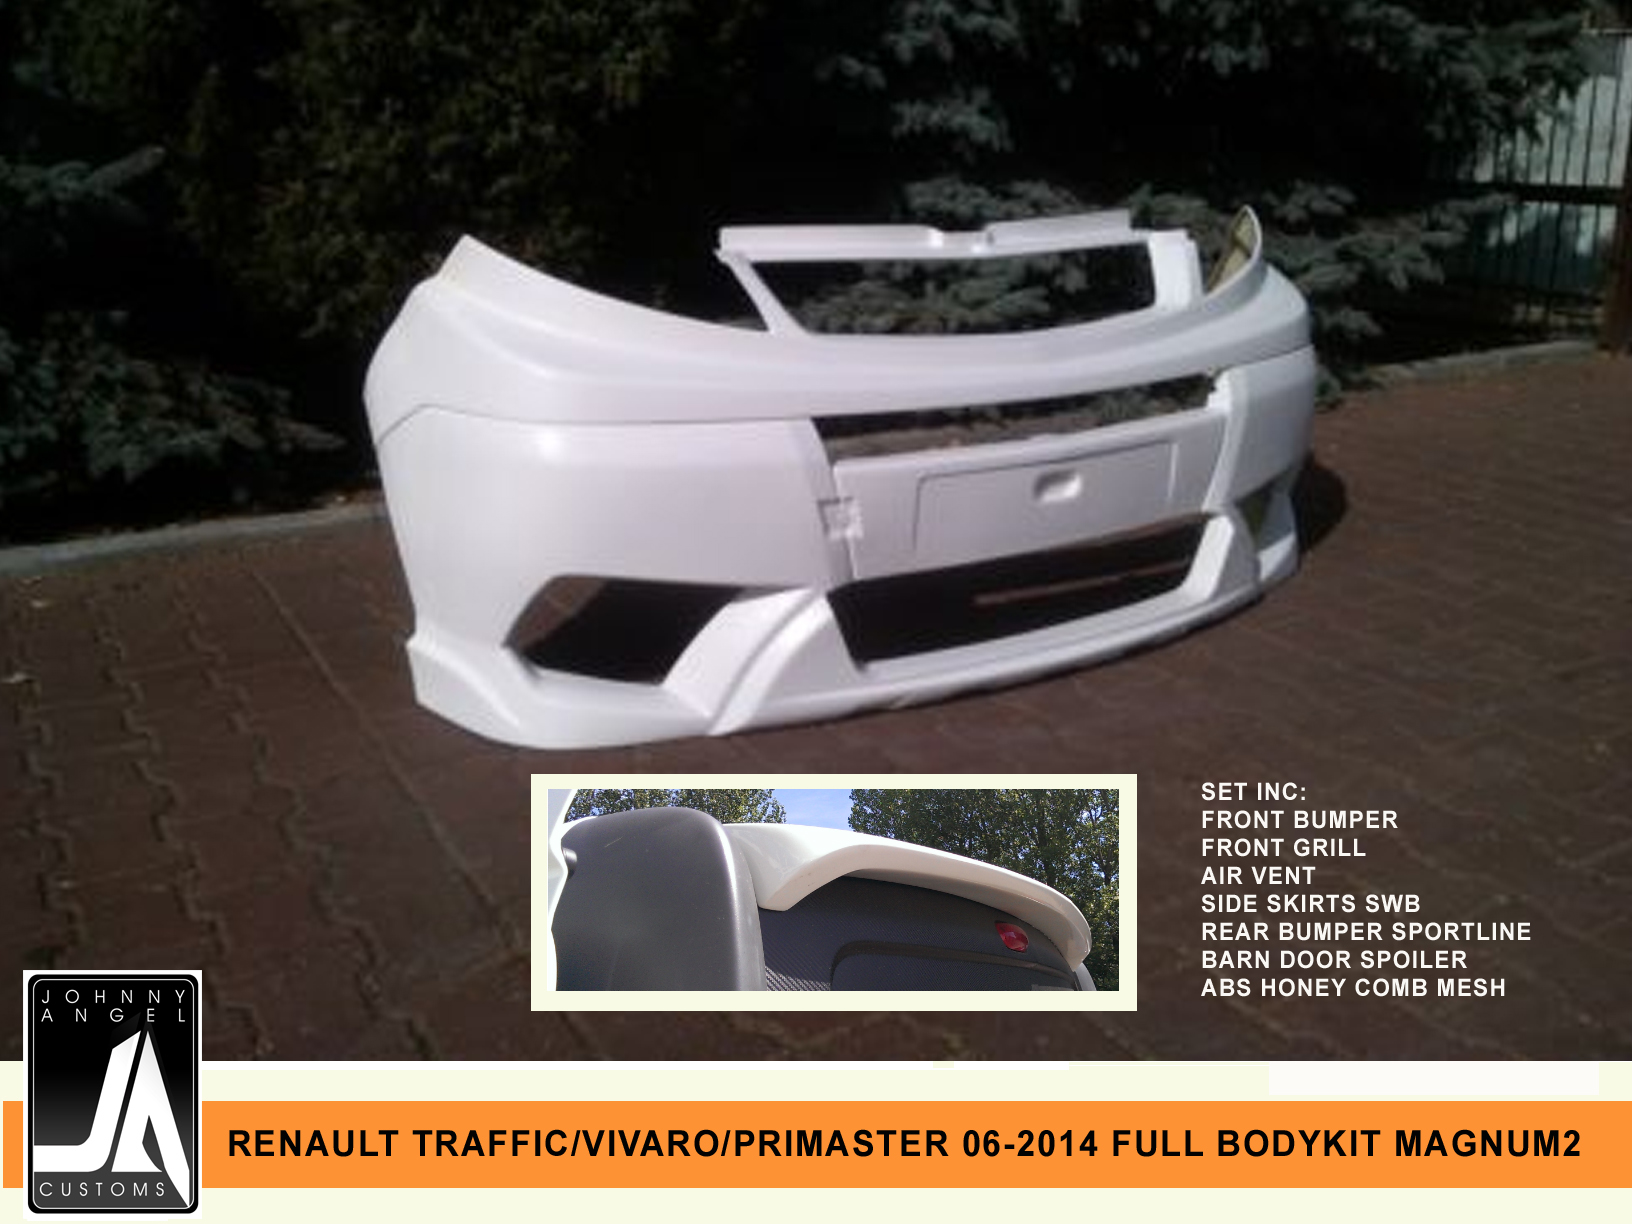 RENAULT TRAFFIC VIVARO PRIMASTER 06-2014 FULL BODYKIT MAGNUM2 By Johnny Angel Customs Pic 2